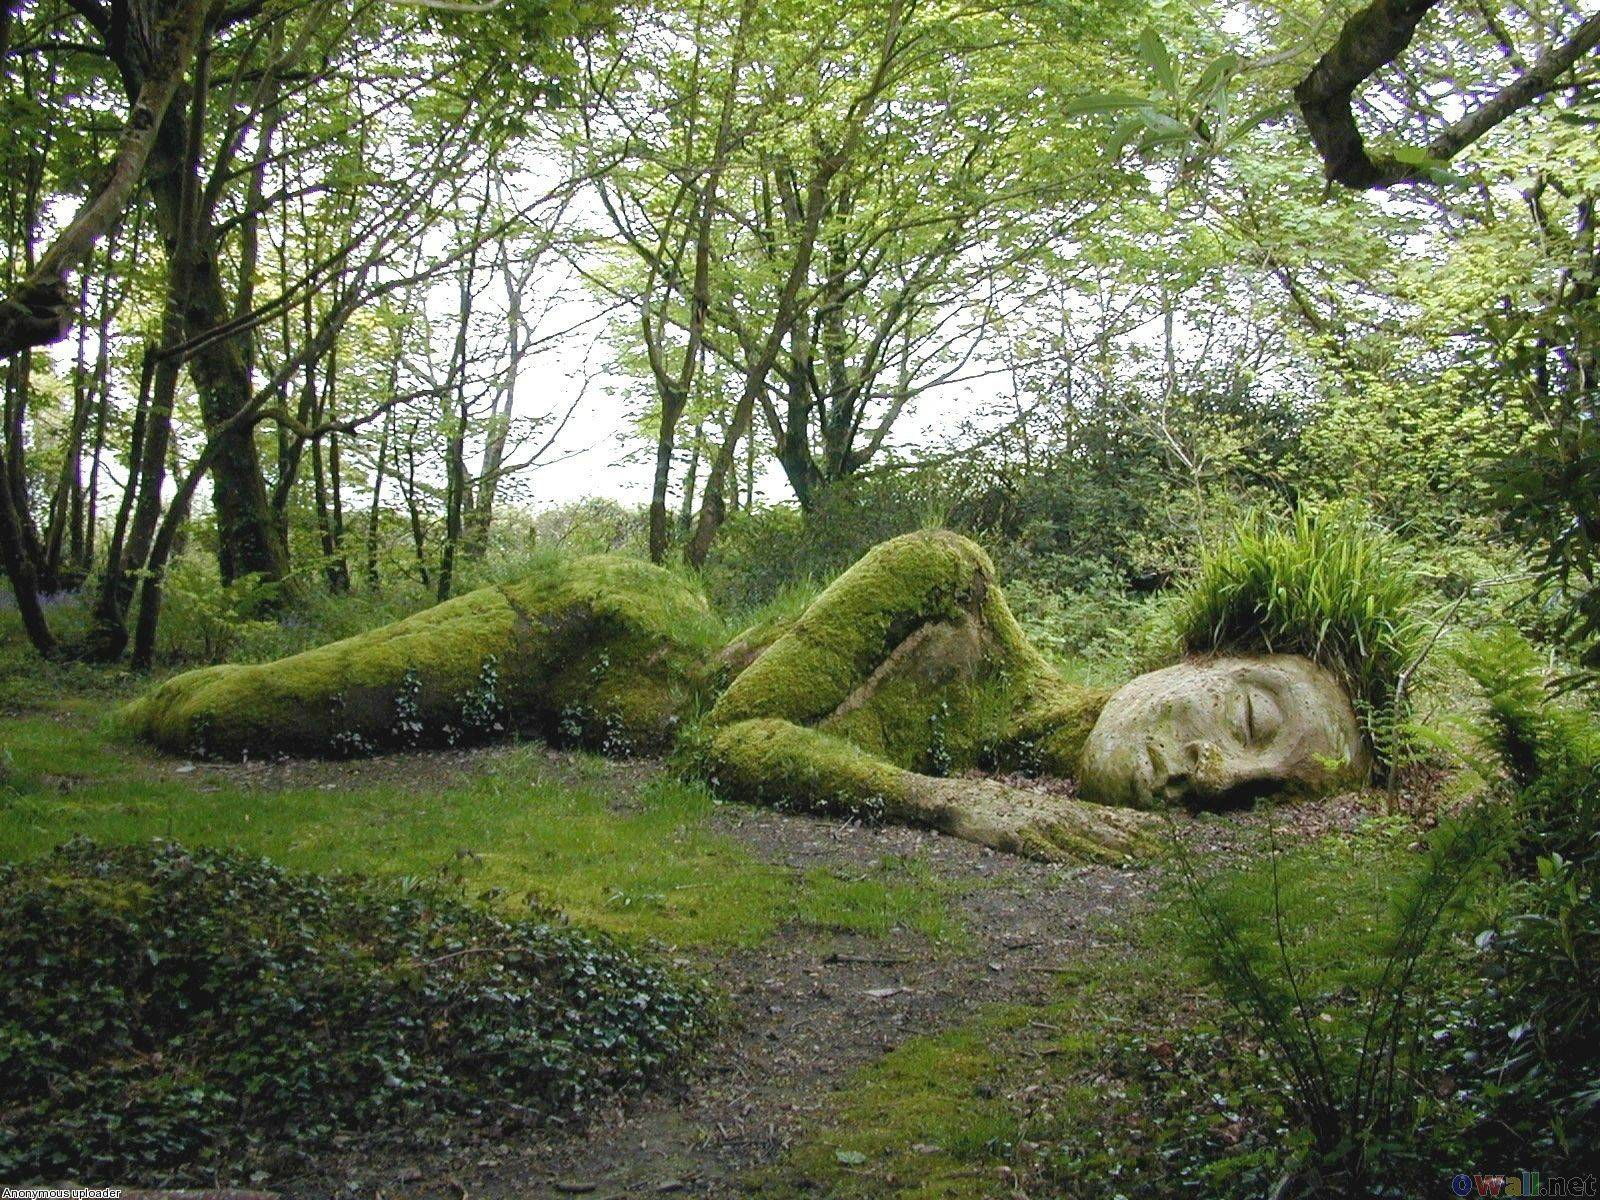 Sleeping Goddess, Heligan, England